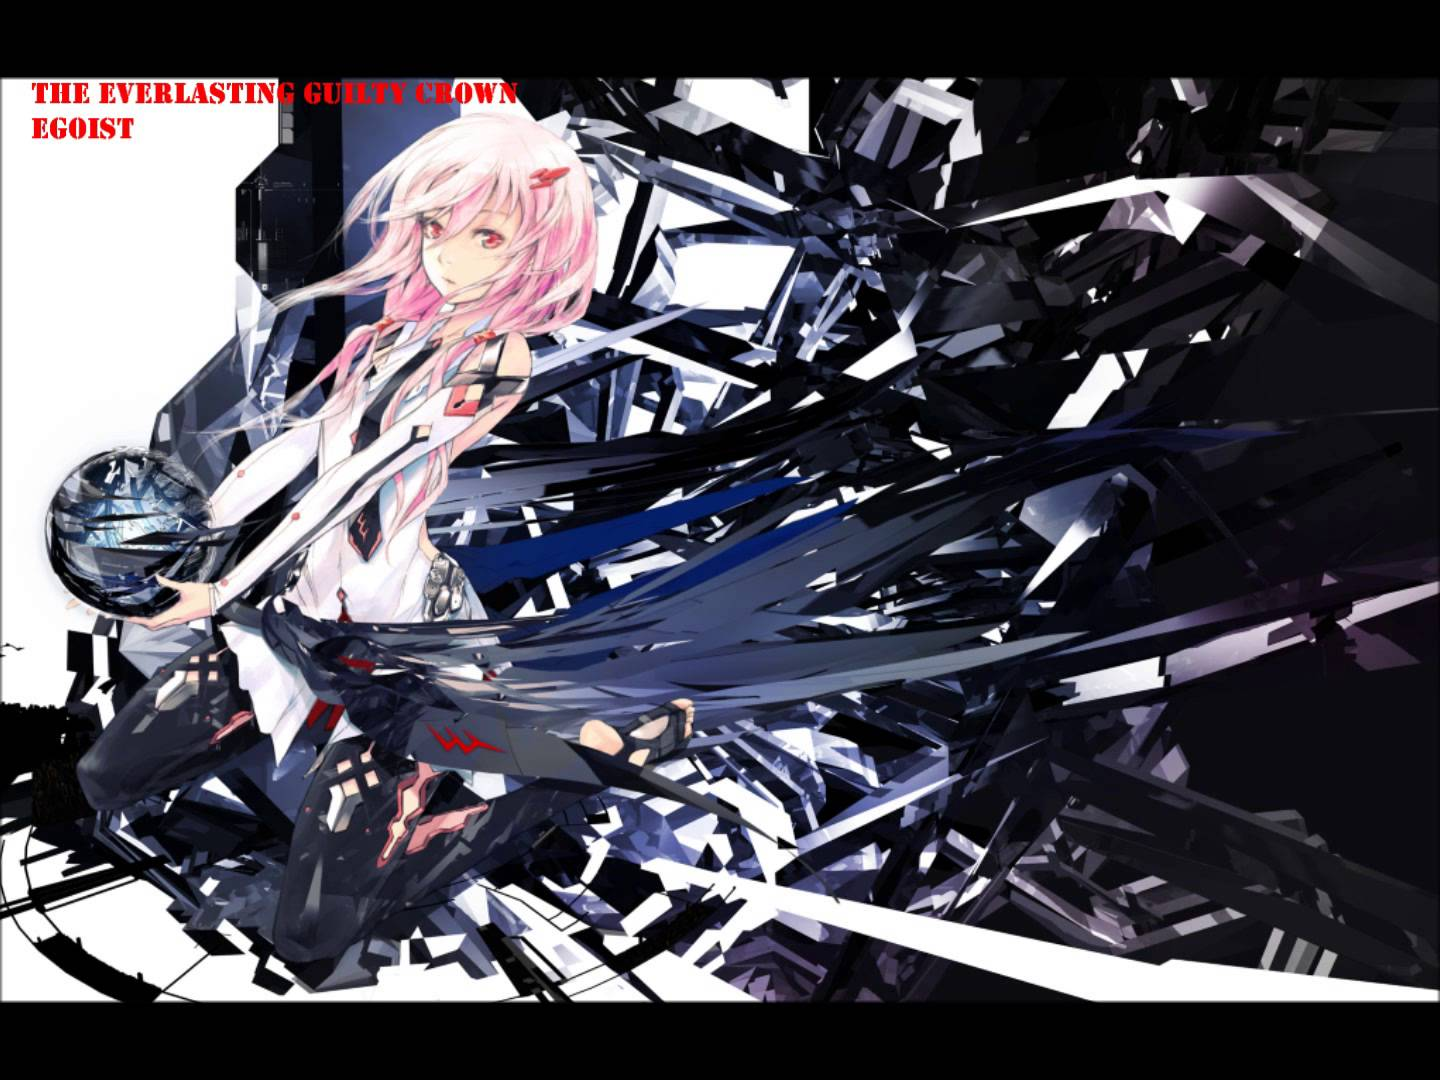 The Everlasting Guilty Crown [EGOIST] with Lyrics